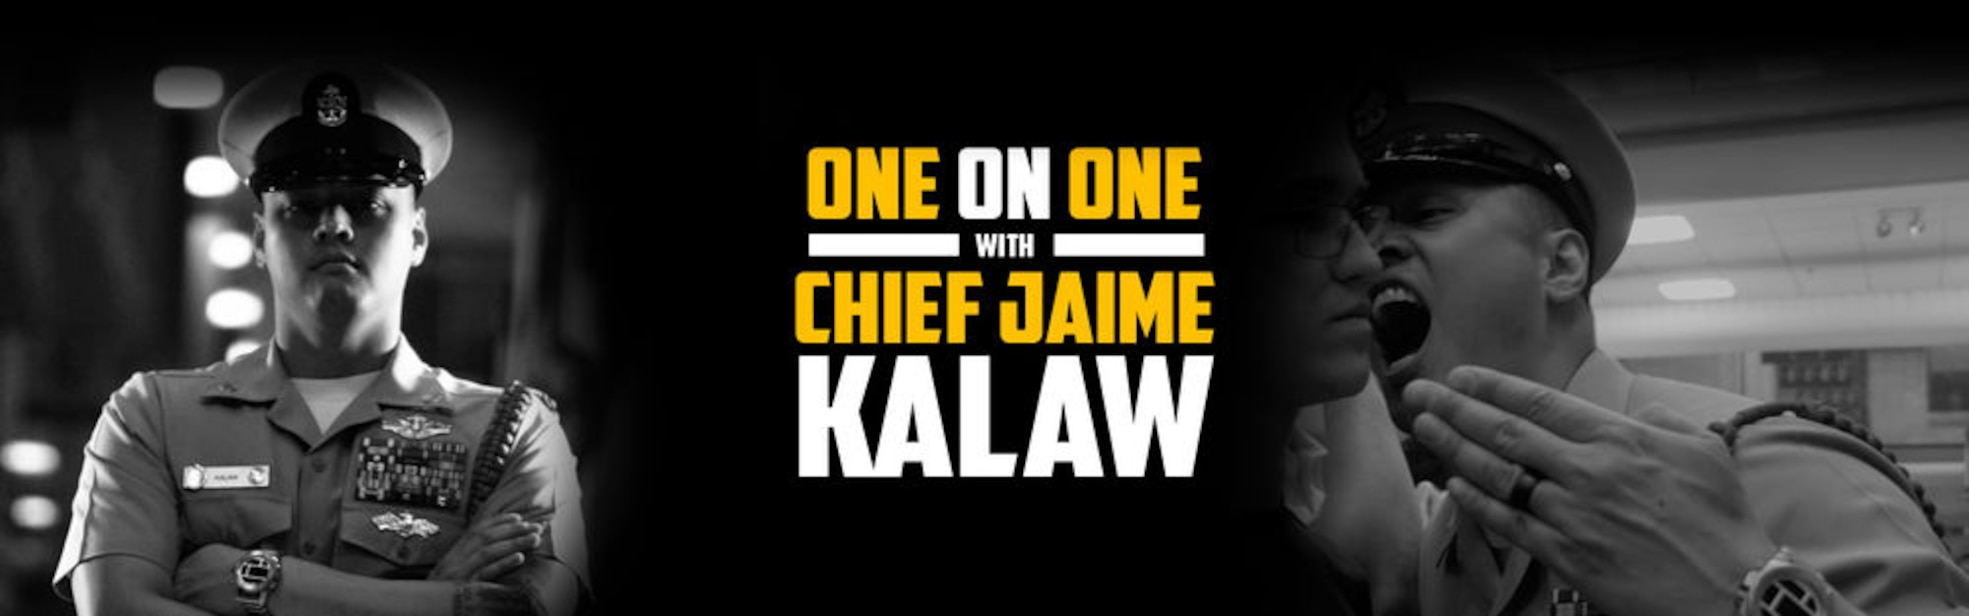 One on One with Chief Jamie Kalaw with a Sailor standing on the left and yellling on the right.